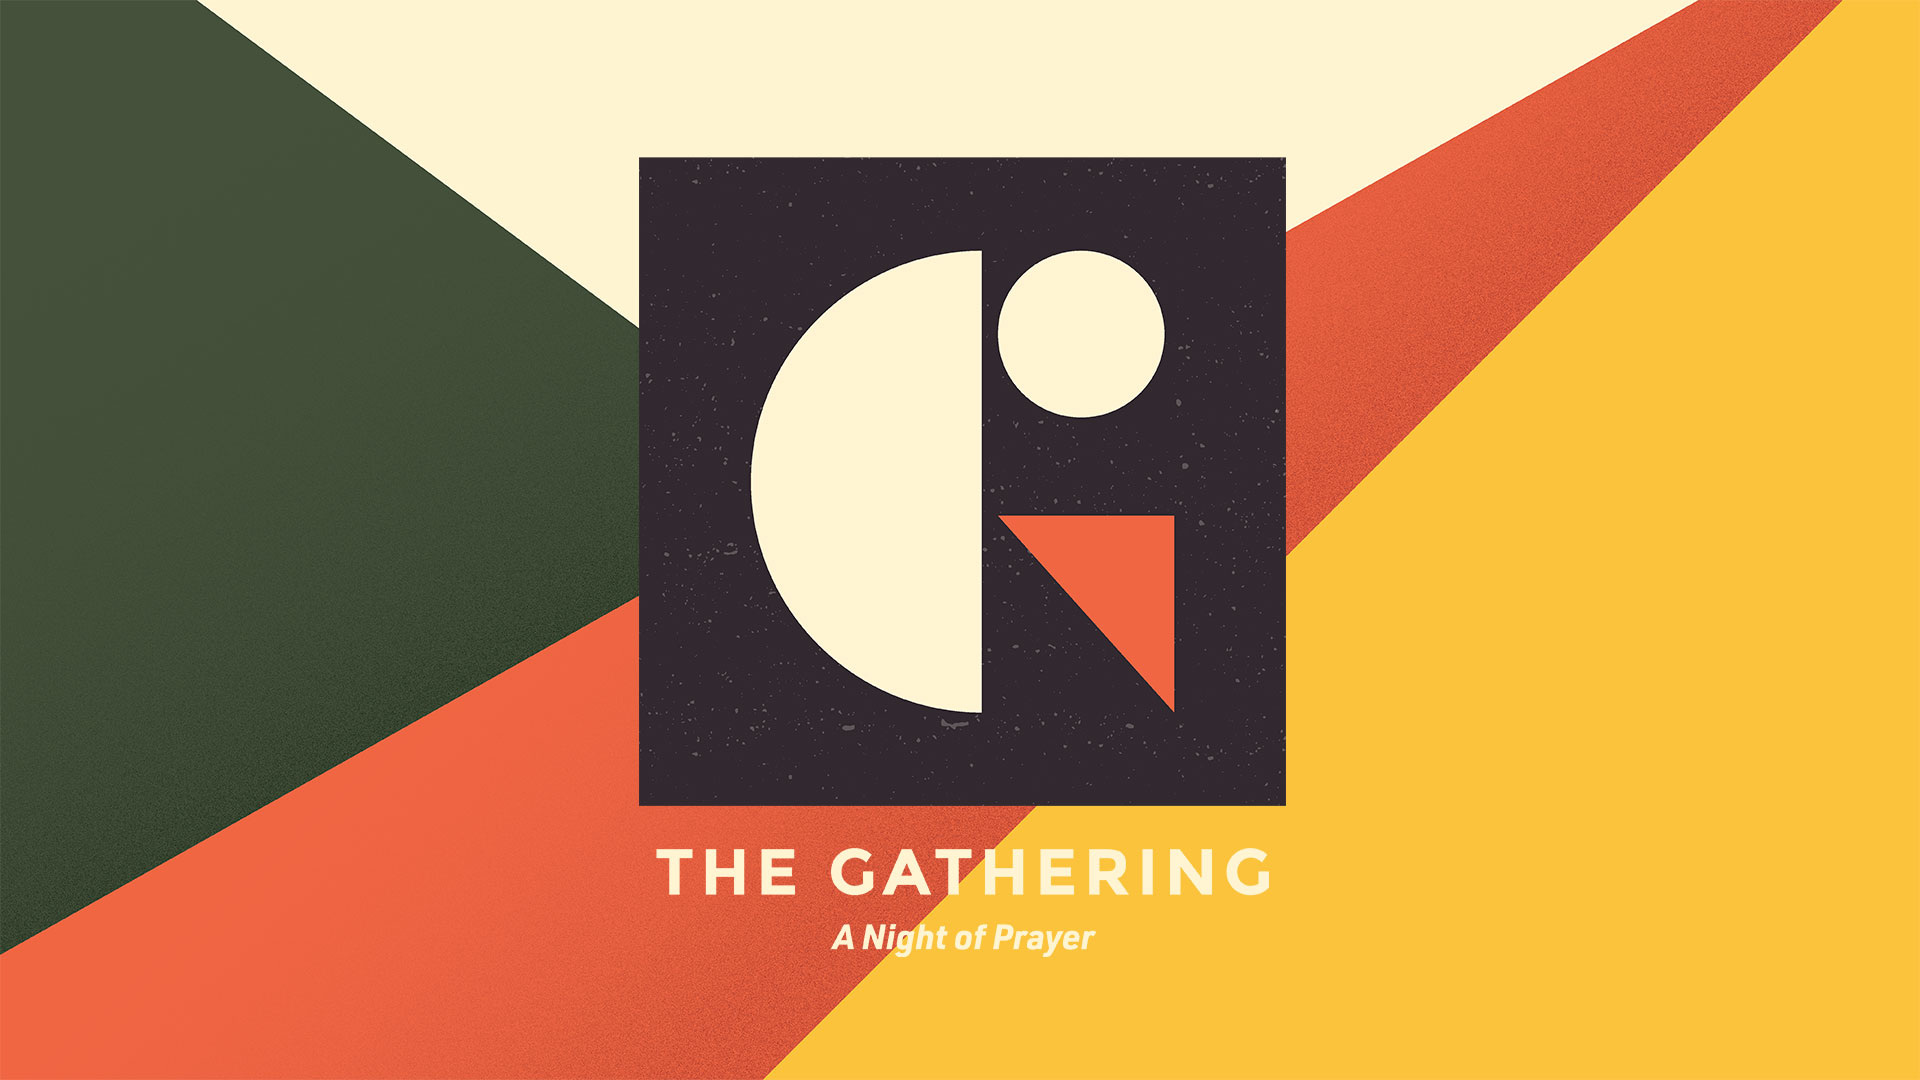 The Gathering: A Night of Prayer